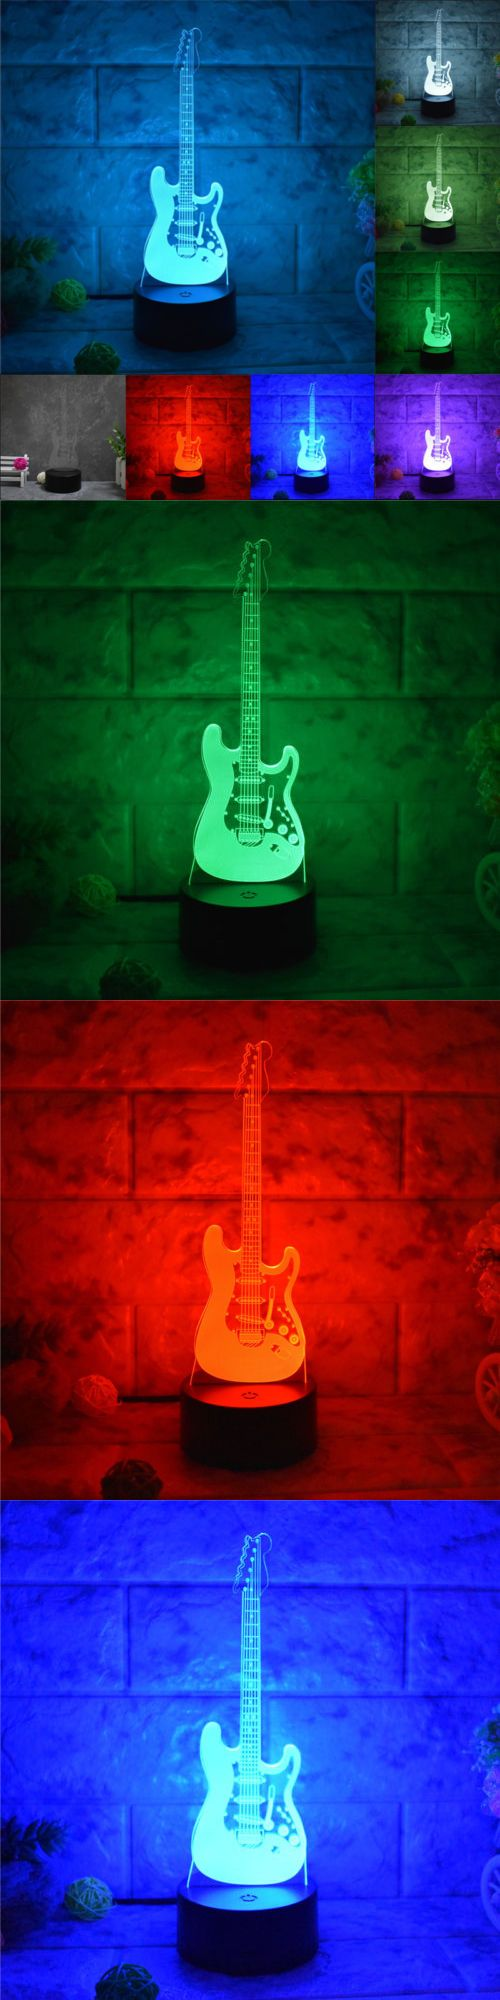 Lamps 112581 Electric Guitar 3d Acrylic Led Touch Night Light 7 Color Home Decor Table Lamp Buy It Now Only 19 99 On E Night Light Led Night Light Decor